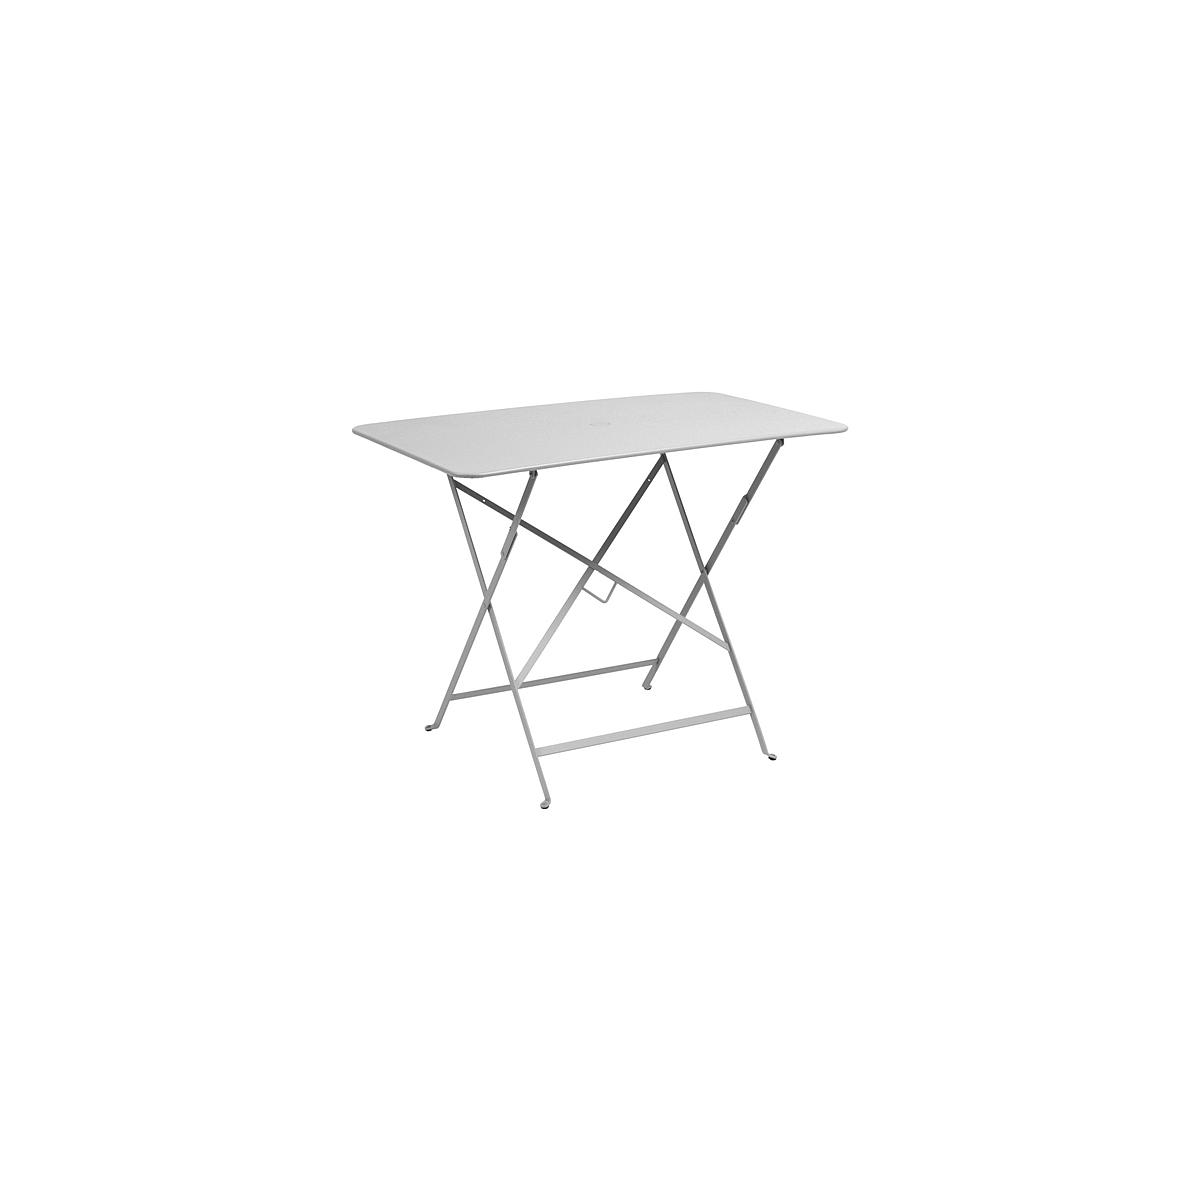 BISTRO by Fermob Table 97x57cm  Gris métal